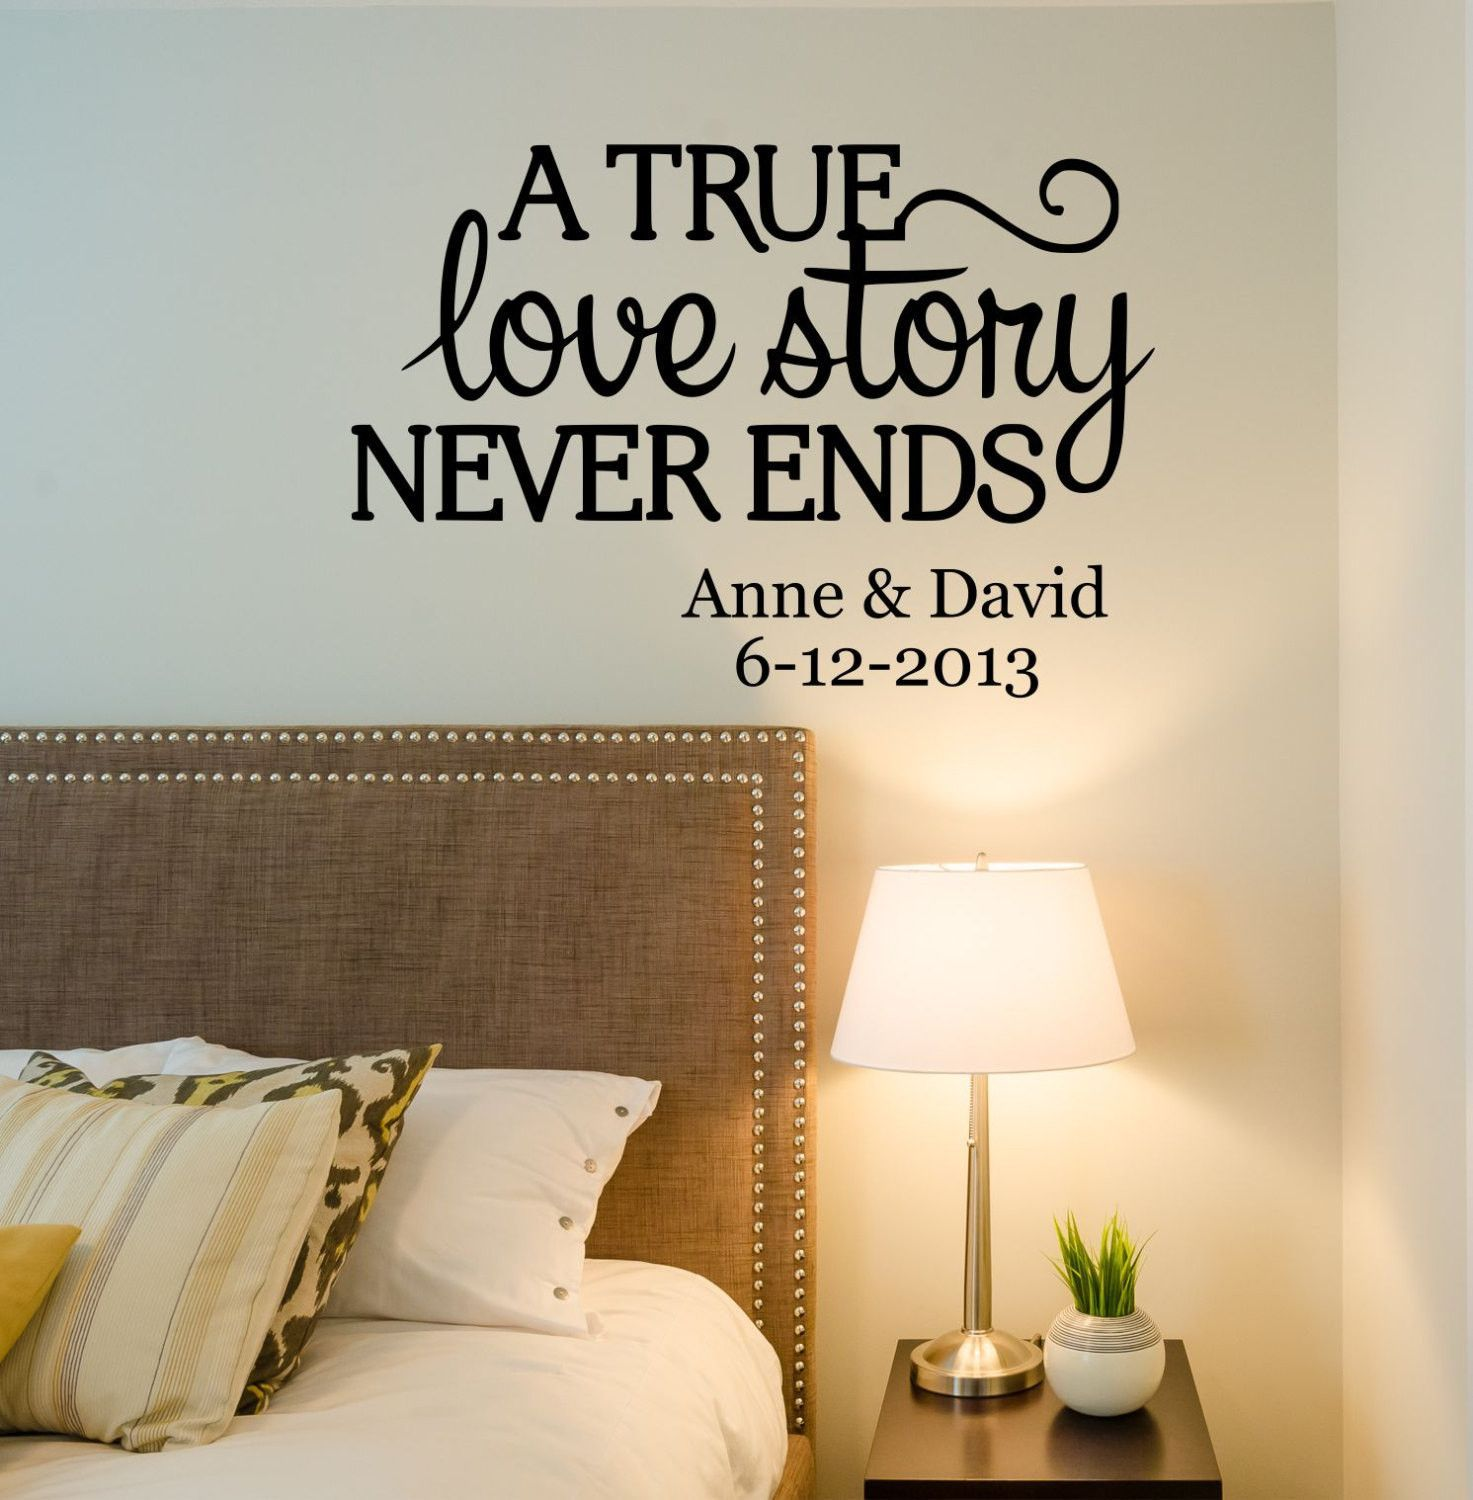 A true love story never ends personalized custom name established a true love story never ends personalized custom name established date quote vinyl wall decal sticker amipublicfo Image collections